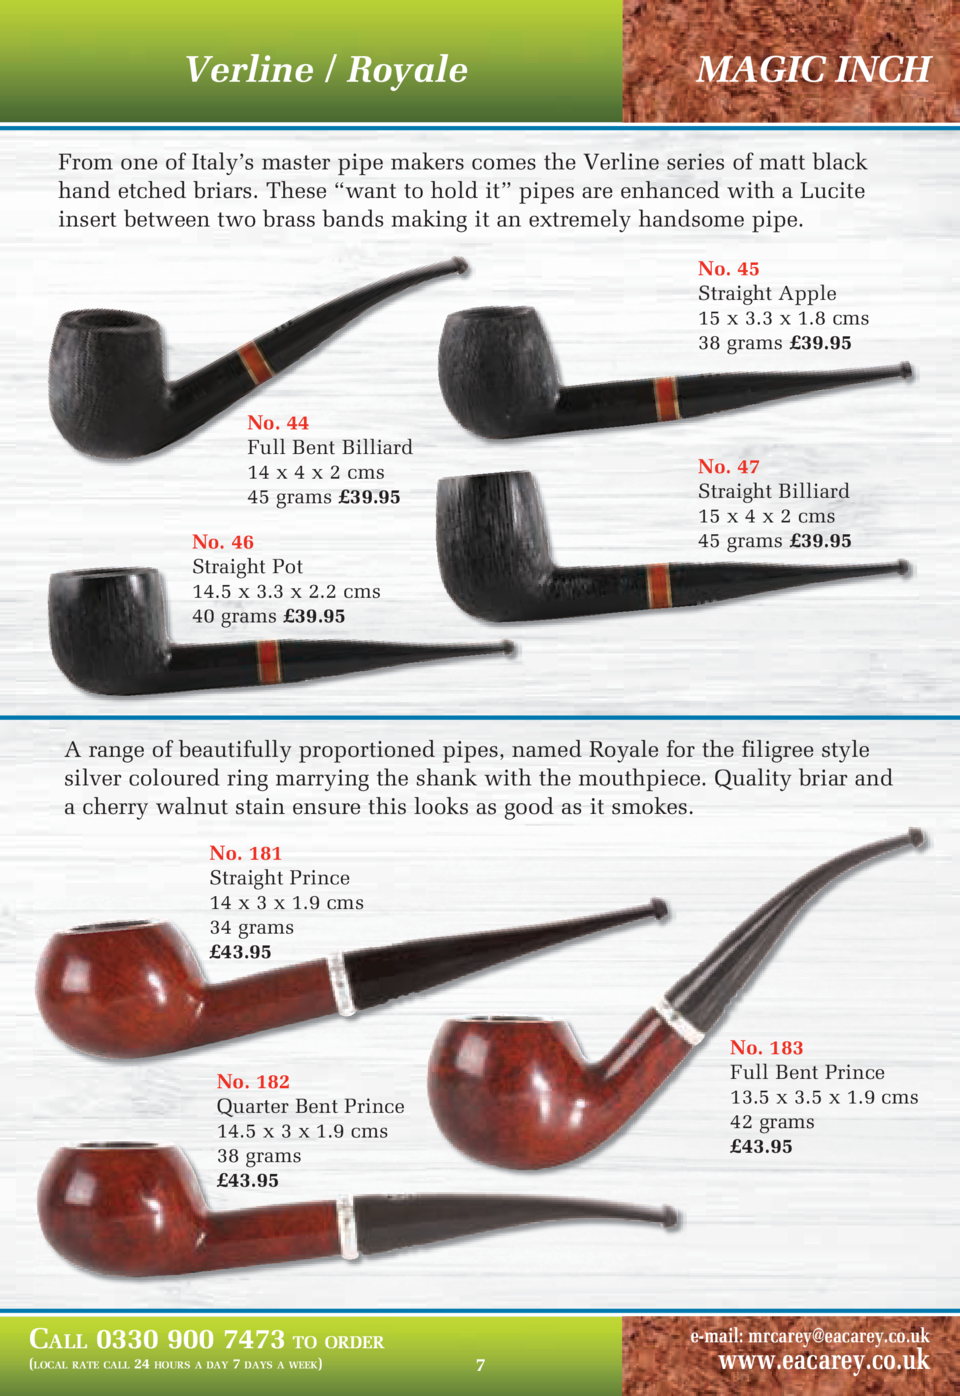 Verline   Royale  MAGIC INCH  From one of Italy   s master pipe makers comes the Verline series of matt black hand etched ...